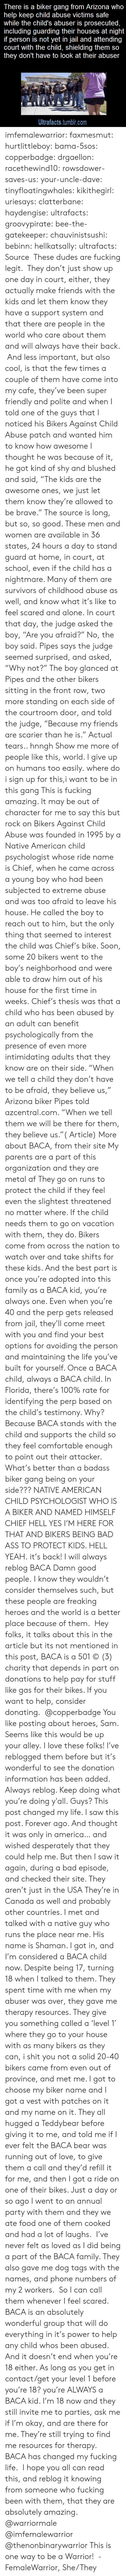 "Organization: There is a biker gang from Arizona who  help keep child abuse victims safe  while the child's abuser is prosecuted,  including guarding their houses at night  person is not yet in jail and attending  court with the child, shielding them so  they don't have to look at their abuser  Ultrafacts.tumblr.com imfemalewarrior: faxmesmut:  hurtlittleboy:  bama-5sos:  copperbadge:  drgaellon:  racethewind10:  rowsdower-saves-us:  your-uncle-dave:  tinyfloatingwhales:  kikithegirl:  uriesays:  clatterbane:  haydengise:  ultrafacts:  groovypirate:  bee-the-gatekeeper:  chauvinistsushi:  bebinn:  hellkatsally:  ultrafacts:  Source   These dudes are fucking legit.  They don't just show up one day in court, either, they actually make friends with the kids and let them know they have a support system and that there are people in the world who care about them and will always have their back.  And less important, but also cool, is that the few times a couple of them have come into my cafe, they've been super friendly and polite and when I told one of the guys that I noticed his Bikers Against Child Abuse patch and wanted him to know how awesome I thought he was because of it, he got kind of shy and blushed and said, ""The kids are the awesome ones, we just let them know they're allowed to be brave.""  The source is long, but so, so good. These men and women are available in 36 states, 24 hours a day to stand guard at home, in court, at school, even if the child has a nightmare. Many of them are survivors of childhood abuse as well, and know what it's like to feel scared and alone.  In court that day, the judge asked the boy, ""Are you afraid?"" No, the boy said. Pipes says the judge seemed surprised, and asked, ""Why not?"" The boy glanced at Pipes and the other bikers sitting in the front row, two more standing on each side of the courtroom door, and told the judge, ""Because my friends are scarier than he is.""   Actual tears.. hnngh  Show me more of people like this, world. I give up on humans too easily.  where do i sign up for this,i want to be in this gang    This is fucking amazing. It may be out of character for me to say this but rock on  Bikers Against Child Abuse was founded in 1995 by a Native American child psychologist whose ride name is Chief, when he came across a young boy who had been subjected to extreme abuse and was too afraid to leave his house. He called the boy to reach out to him, but the only thing that seemed to interest the child was Chief's bike. Soon, some 20 bikers went to the boy's neighborhood and were able to draw him out of his house for the first time in weeks. Chief's thesis was that a child who has been abused by an adult can benefit psychologically from the presence of even more intimidating adults that they know are on their side. ""When we tell a child they don't have to be afraid, they believe us,"" Arizona biker Pipes told azcentral.com. ""When we tell them we will be there for them, they believe us.""( Article) More about BACA, from their site  My parents are a part of this organization and they are metal af They go on runs to protect the child if they feel even the slightest threatened no matter where. If the child needs them to go on vacation with them, they do. Bikers come from across the nation to watch over and take shifts for these kids. And the best part is once you're adopted into this family as a BACA kid, you're always one. Even when you're 40 and the perp gets released from jail, they'll come meet with you and find your best options for avoiding the person and maintaining the life you've built for yourself. Once a BACA child, always a BACA child. In Florida, there's 100% rate for identifying the perp based on the child's testimony. Why? Because BACA stands with the child and supports the child so they feel comfortable enough to point out their attacker.  What's better than a badass biker gang being on your side???  NATIVE AMERICAN CHILD PSYCHOLOGIST WHO IS A BIKER AND NAMED HIMSELF CHIEF HELL YES I'M HERE FOR THAT AND BIKERS BEING BAD ASS TO PROTECT KIDS. HELL YEAH.  it's back! I will always reblog BACA  Damn good people.  I know they wouldn't consider themselves such, but these people are freaking heroes and the world is a better place because of them.   Hey folks, it talks about this in the article but its not mentioned in this post, BACA is a 501 © (3) charity that depends in part on donations to help pay for stuff like gas for their bikes. If you want to help, consider donating.   @copperbadge You like posting about heroes, Sam. Seems like this would be up your alley.  I love these folks! I've reblogged them before but it's wonderful to see the donation information has been added.    Always reblog. Keep doing what you're doing y'all.  Guys? This post changed my life. I saw this post. Forever ago. And thought it was only in america… and wished desperately that they could help me. But then I saw it again, during a bad episode, and checked their site. They aren't just in the USA They're in Canada as well and probably other countries. I met and talked with a native guy who runs the place near me. His name is Shaman. I got in, and I'm considered a BACA child now. Despite being 17, turning 18 when I talked to them. They spent time with me when my abuser was over, they gave me therapy resources. They give you something called a 'level 1′ where they go to your house with as many bikers as they can, i shit you not a solid 20-40 bikers came from even out of province, and met me. I got to choose my biker name and I got a vest with patches on it and my name on it. They all hugged a Teddybear before giving it to me, and told me if I ever felt the BACA bear was running out of love, to give them a call and they'd refill it for me, and then I got a ride on one of their bikes. Just a day or so ago I went to an annual party with them and they we ate food one of them cooked and had a lot of laughs.  I've never felt as loved as I did being a part of the BACA family. They also gave me dog tags with the names, and phone numbers of my 2 workers.  So I can call them whenever I feel scared.  BACA is an absolutely wonderful group that will do everything in it's power to help any child whos been abused.  And it doesn't end when you're 18 either. As long as you get in contact/get your level 1 before you're 18? you're ALWAYS a BACA kid. I'm 18 now and they still invite me to parties, ask me if I'm okay, and are there for me. They're still trying to find me resources for therapy.  BACA has changed my fucking life.  I hope you all can read this, and reblog it knowing from someone who fucking been with them, that they are absolutely amazing.   @warriormale @imfemalewarrior @thenonbinarywarrior  This is one way to be a Warrior!  -FemaleWarrior, She/They"